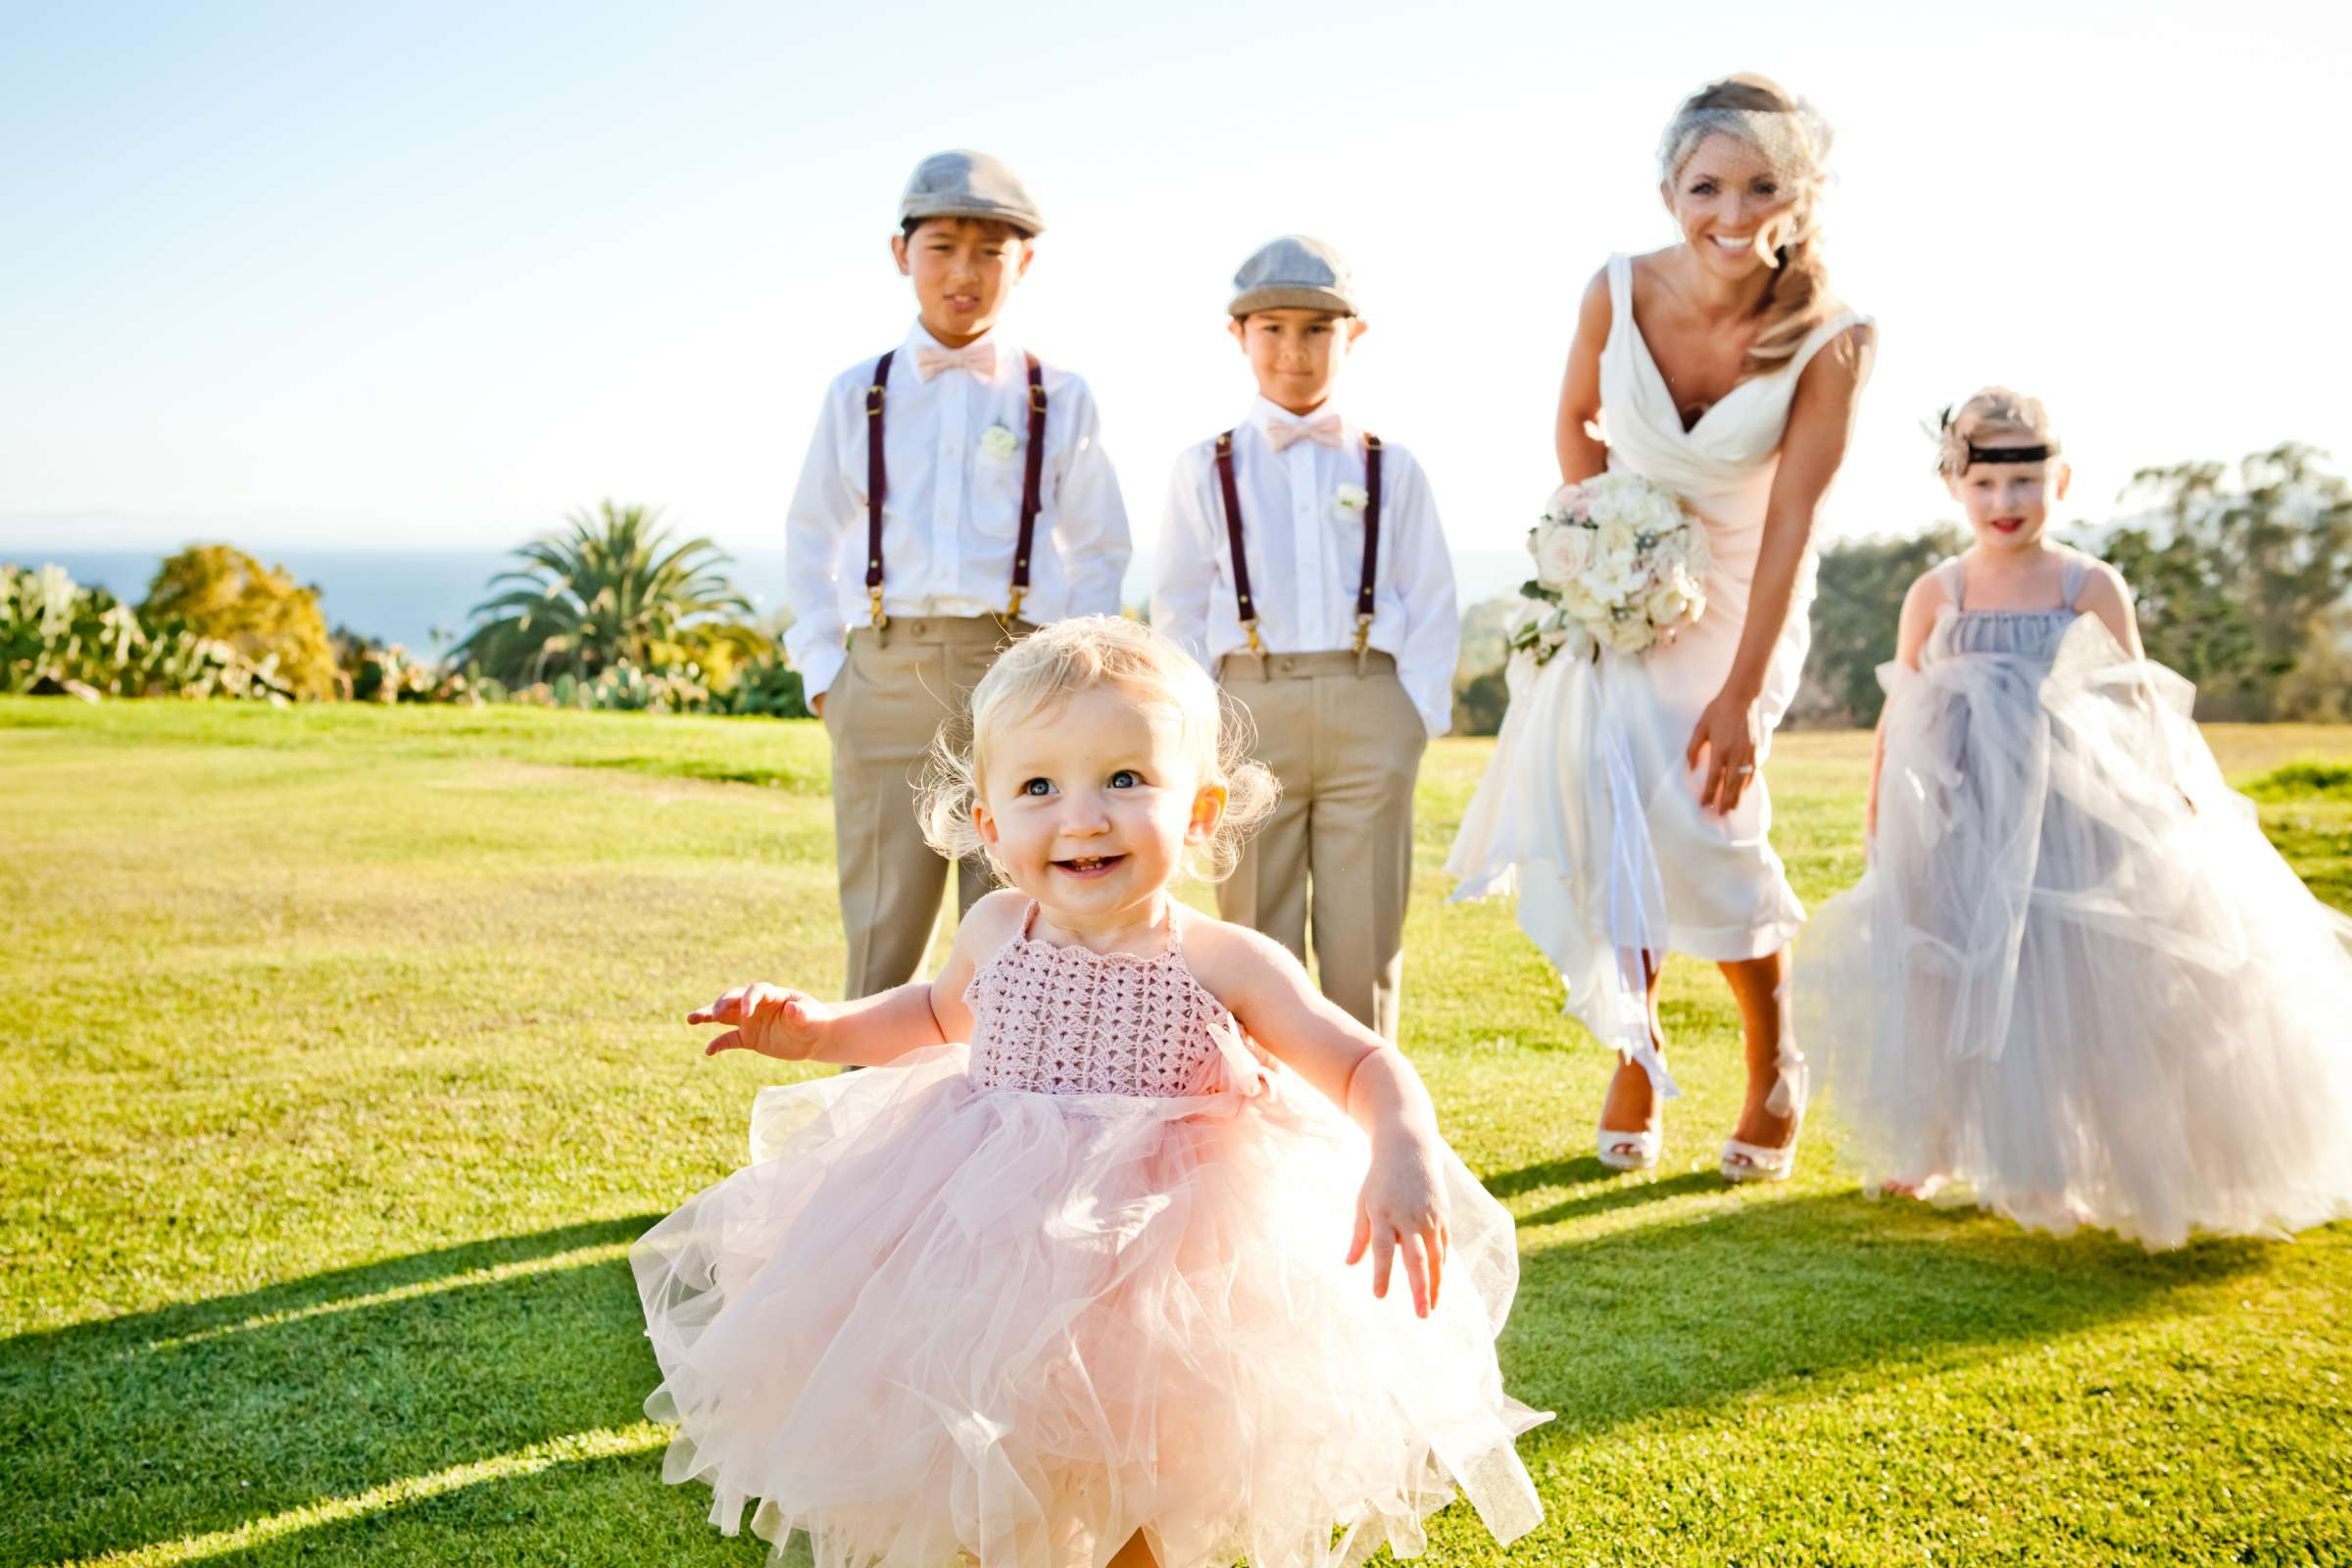 Kids at Montecito Country Club Wedding coordinated by Jill Remy, China and Dylan Wedding Photo #129876 by True Photography